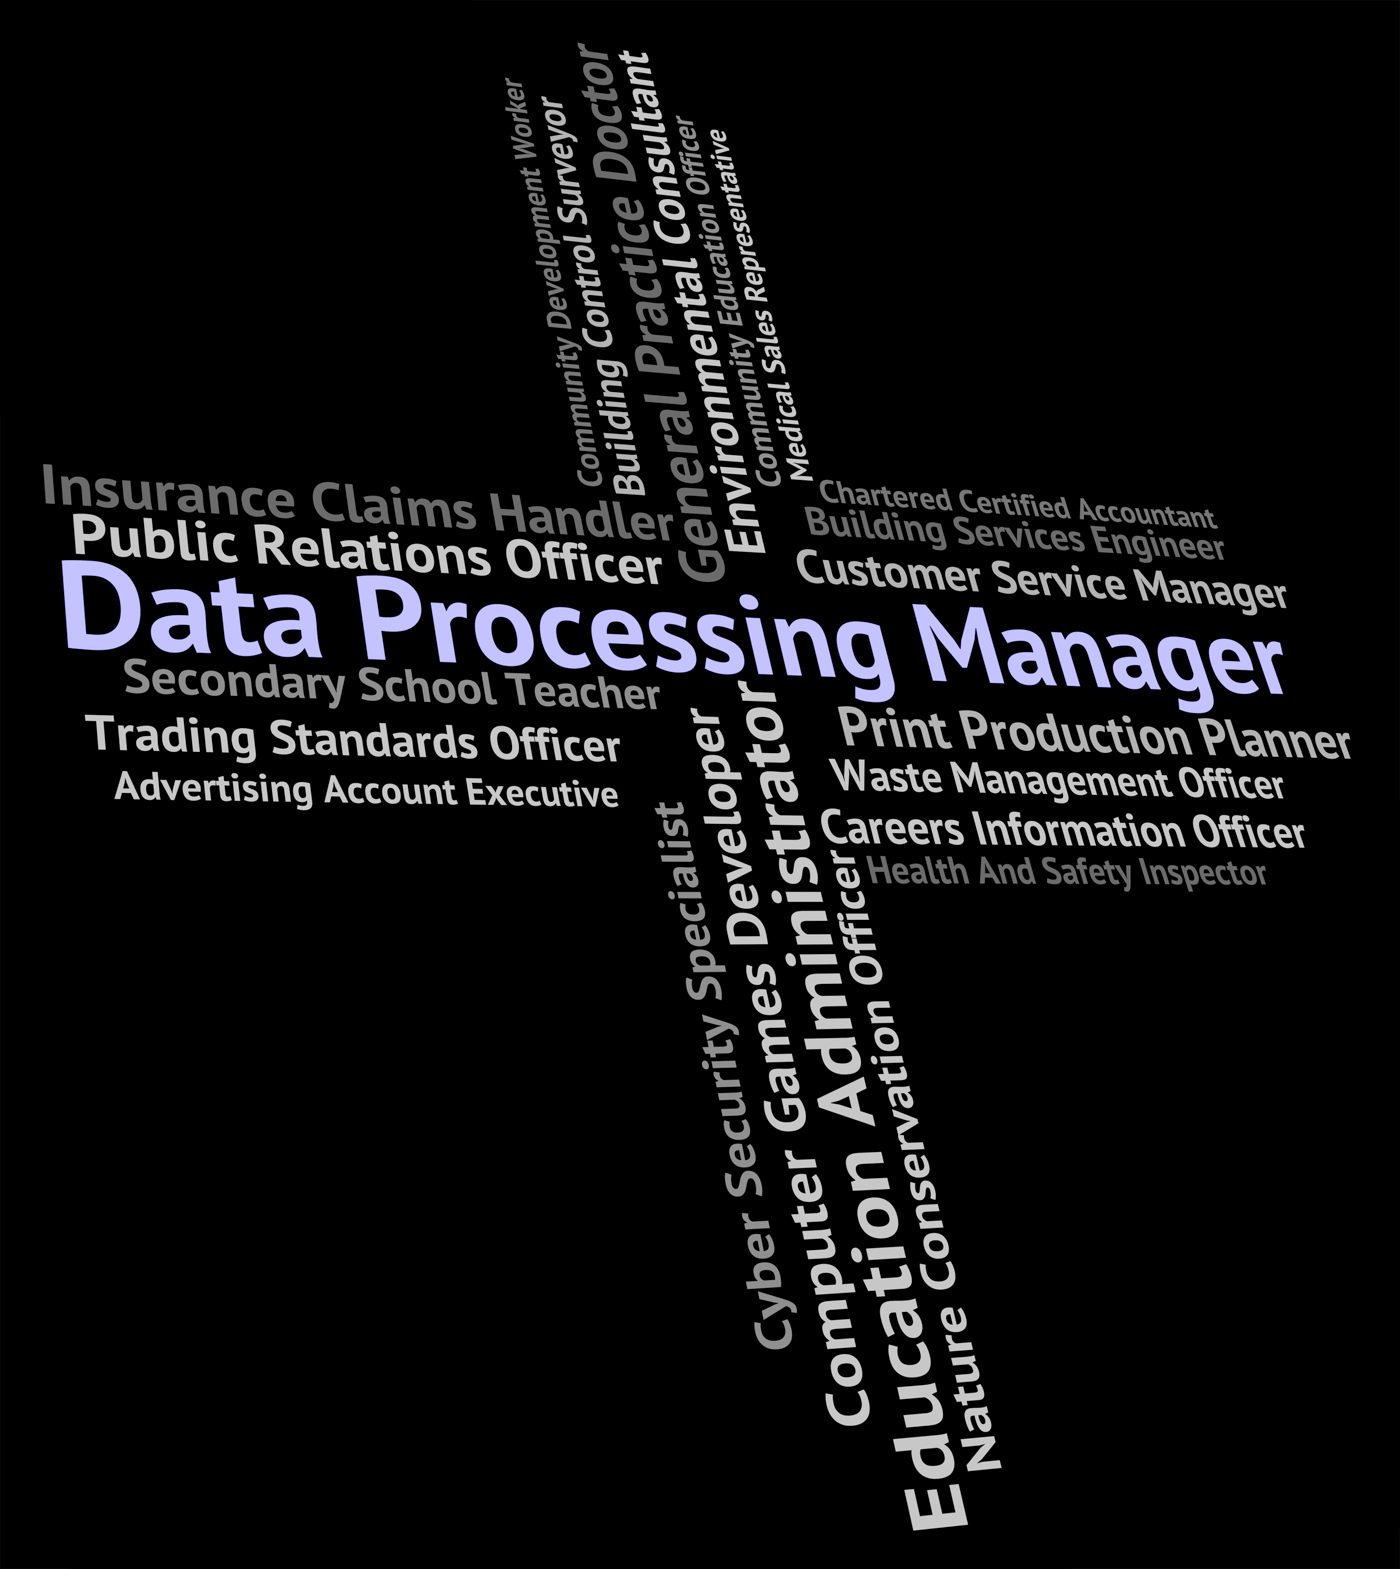 Data processing manager means hire work and occupation photo